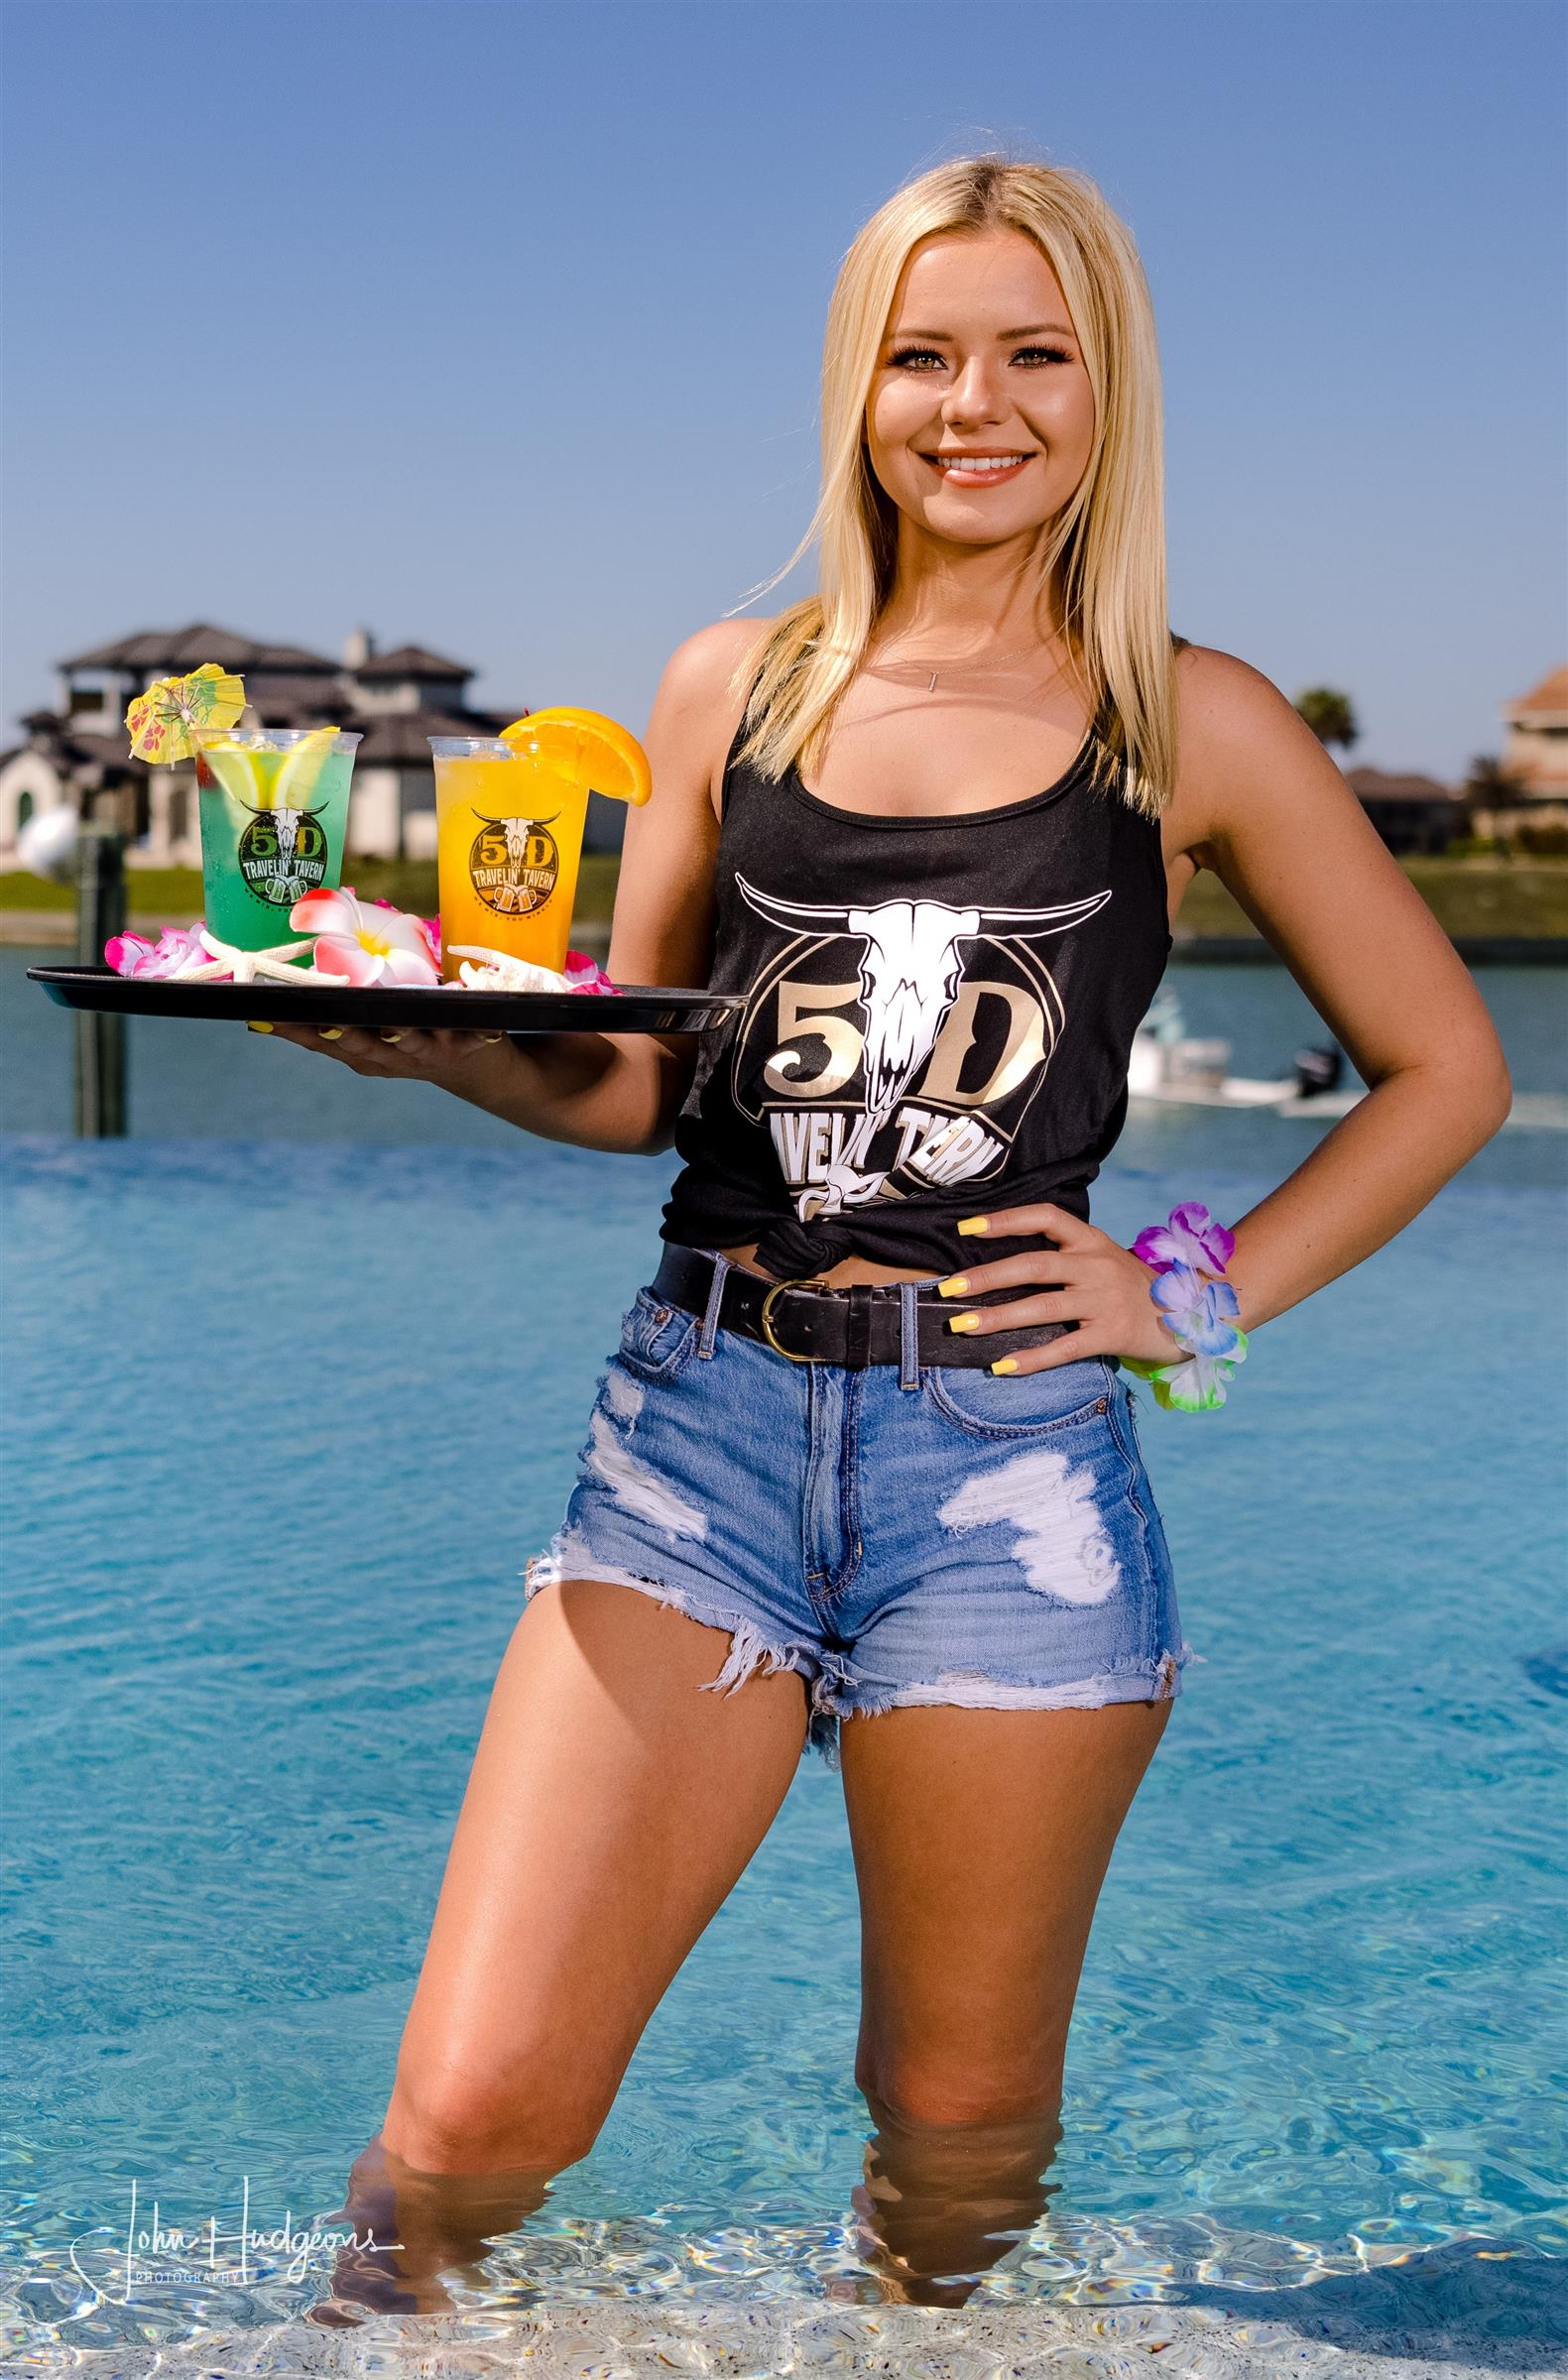 Girl wearing 5D Steakhouse shirt, holding two cocktails standing in a pool